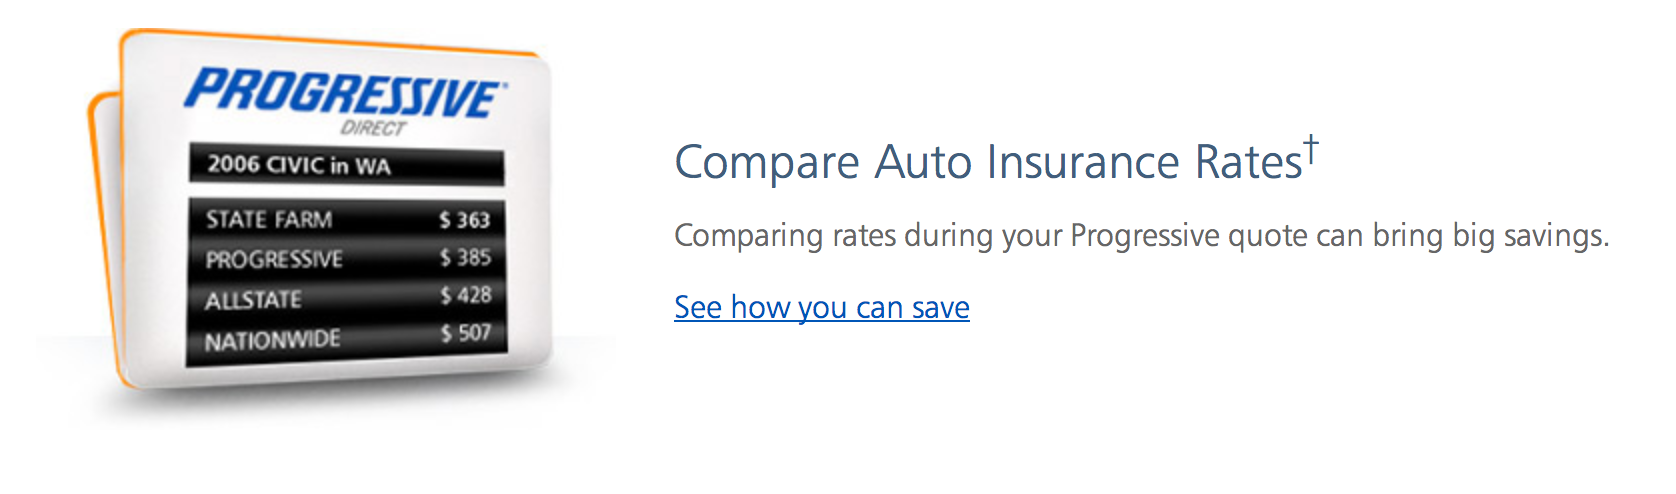 build customer trust through content competitor example with progressive insurance